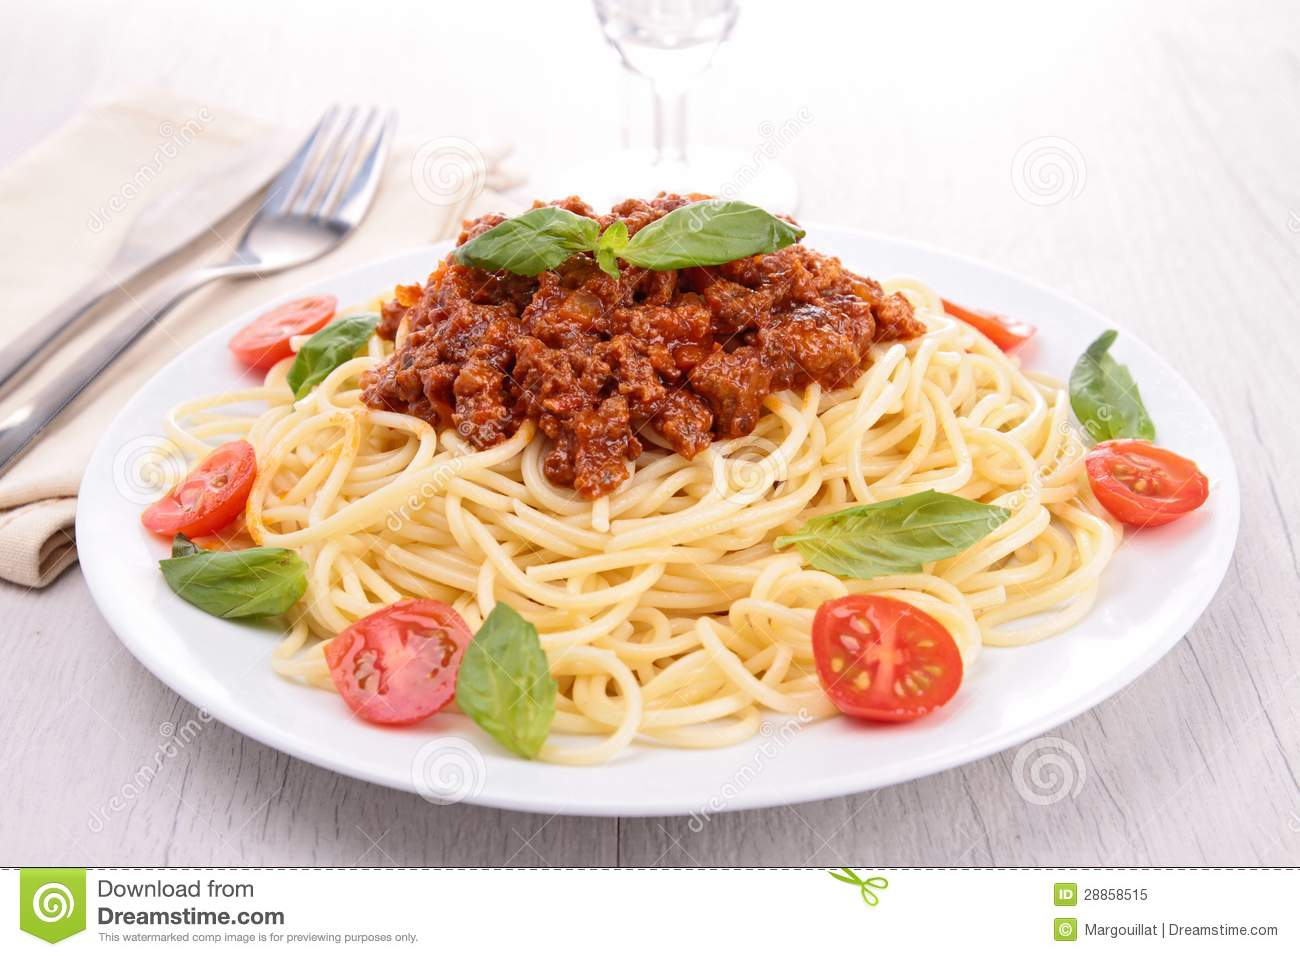 Spaghetti With Bolognese Sauce Royalty Free Stock Photo - Image ...